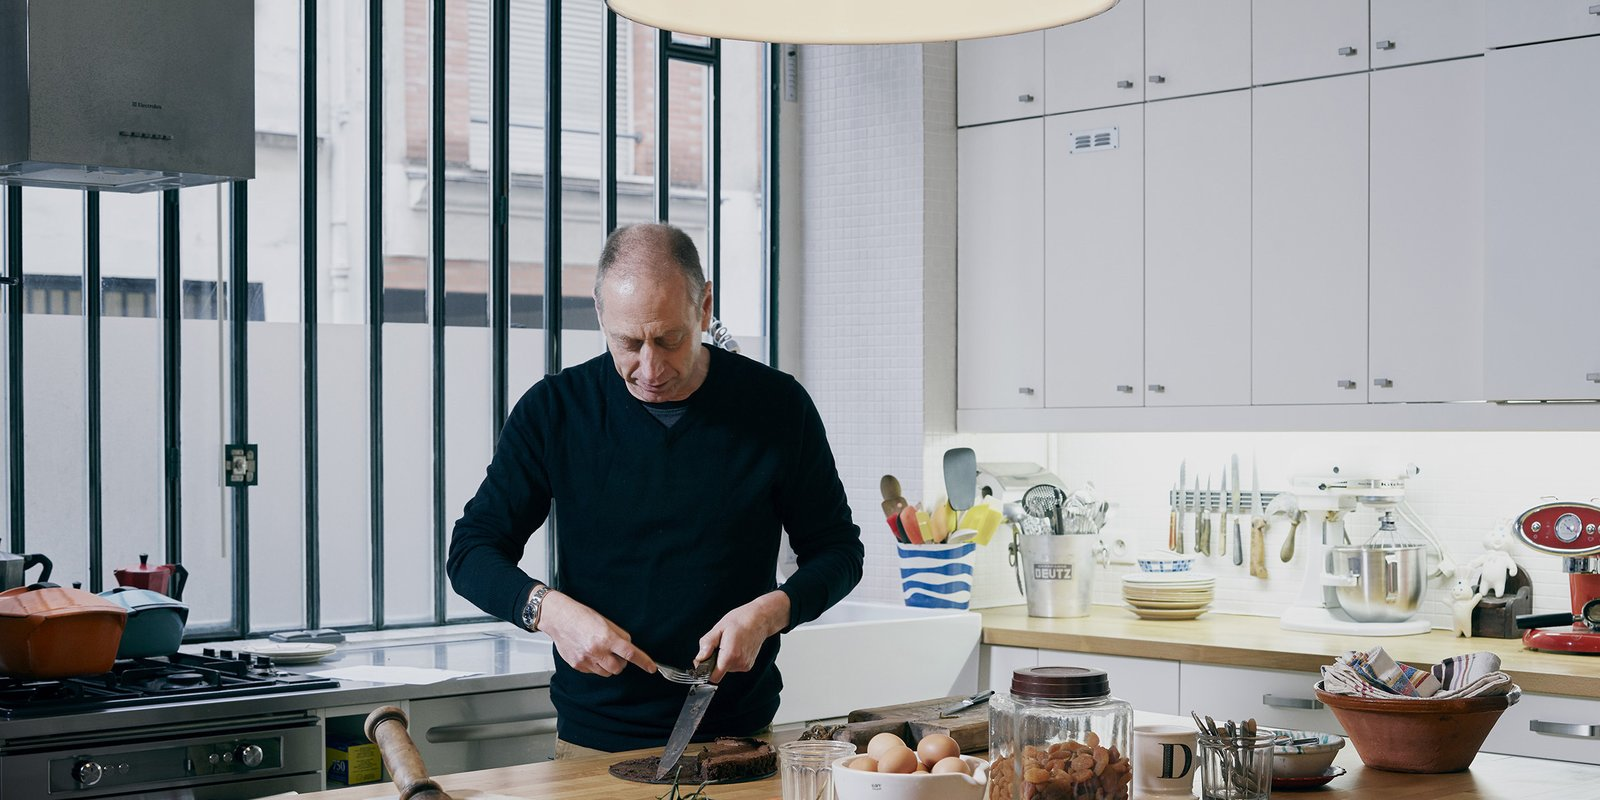 David Lebovitz' Paris kitchen